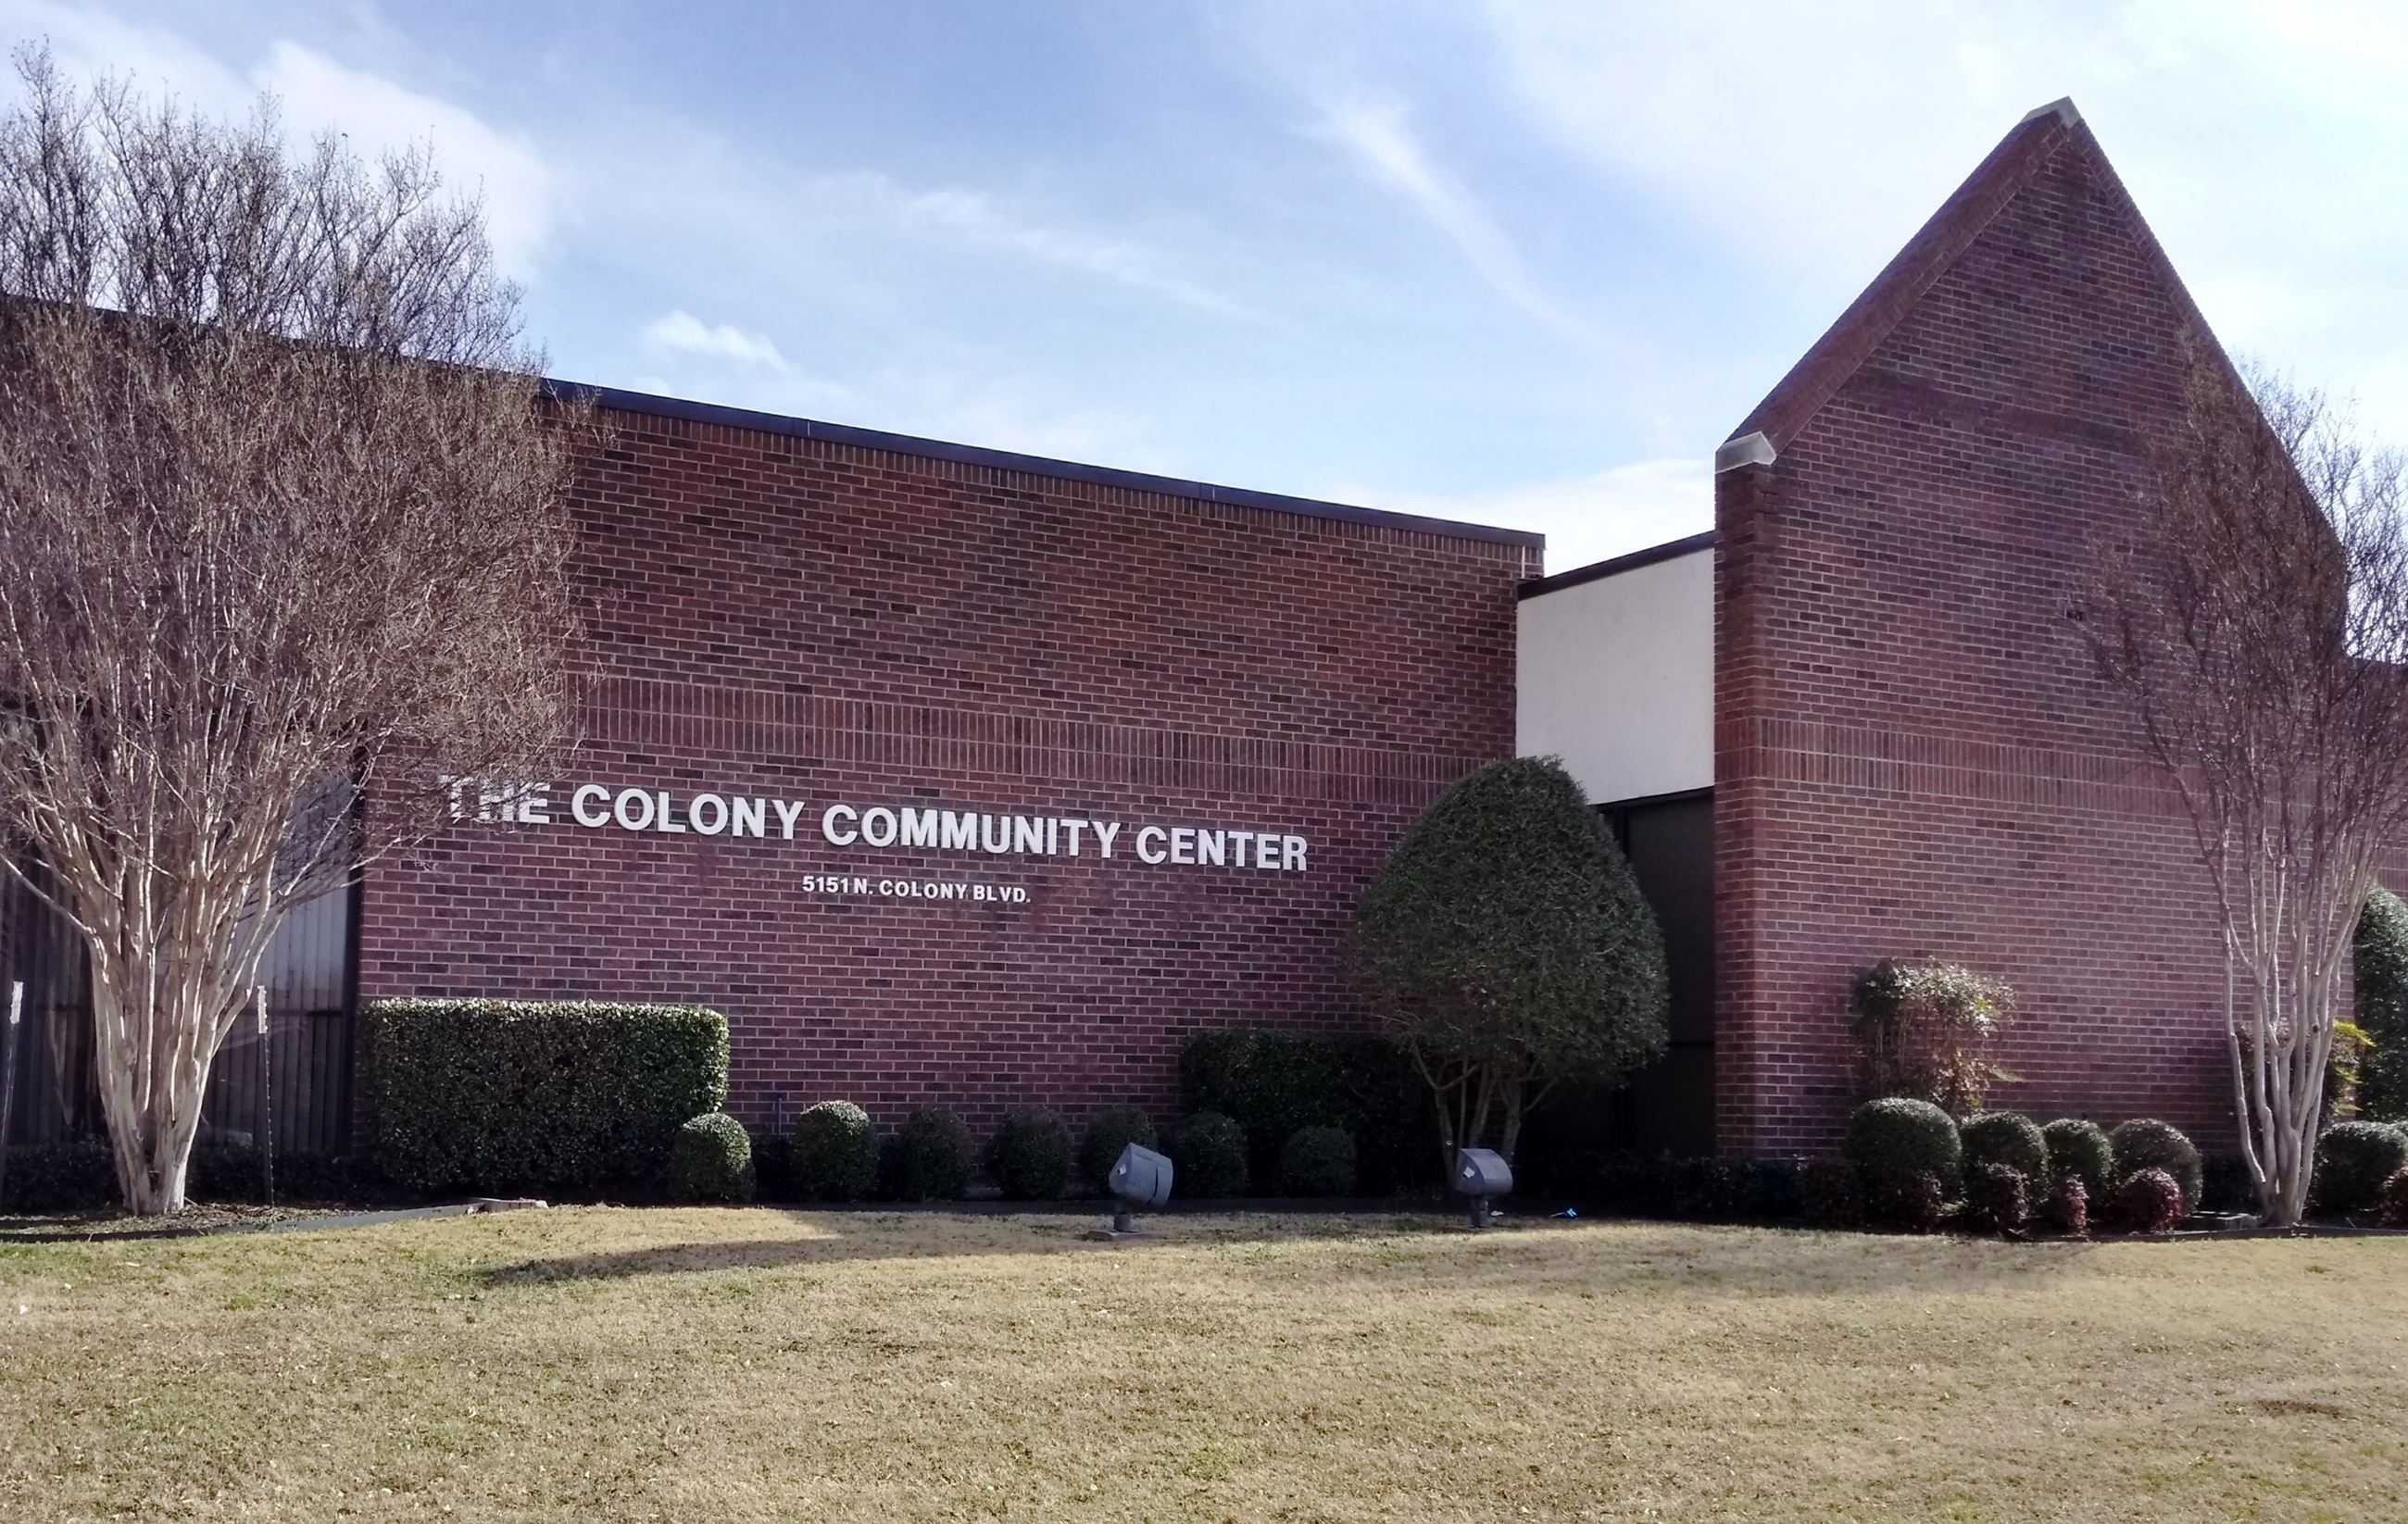 The Colony Community Center